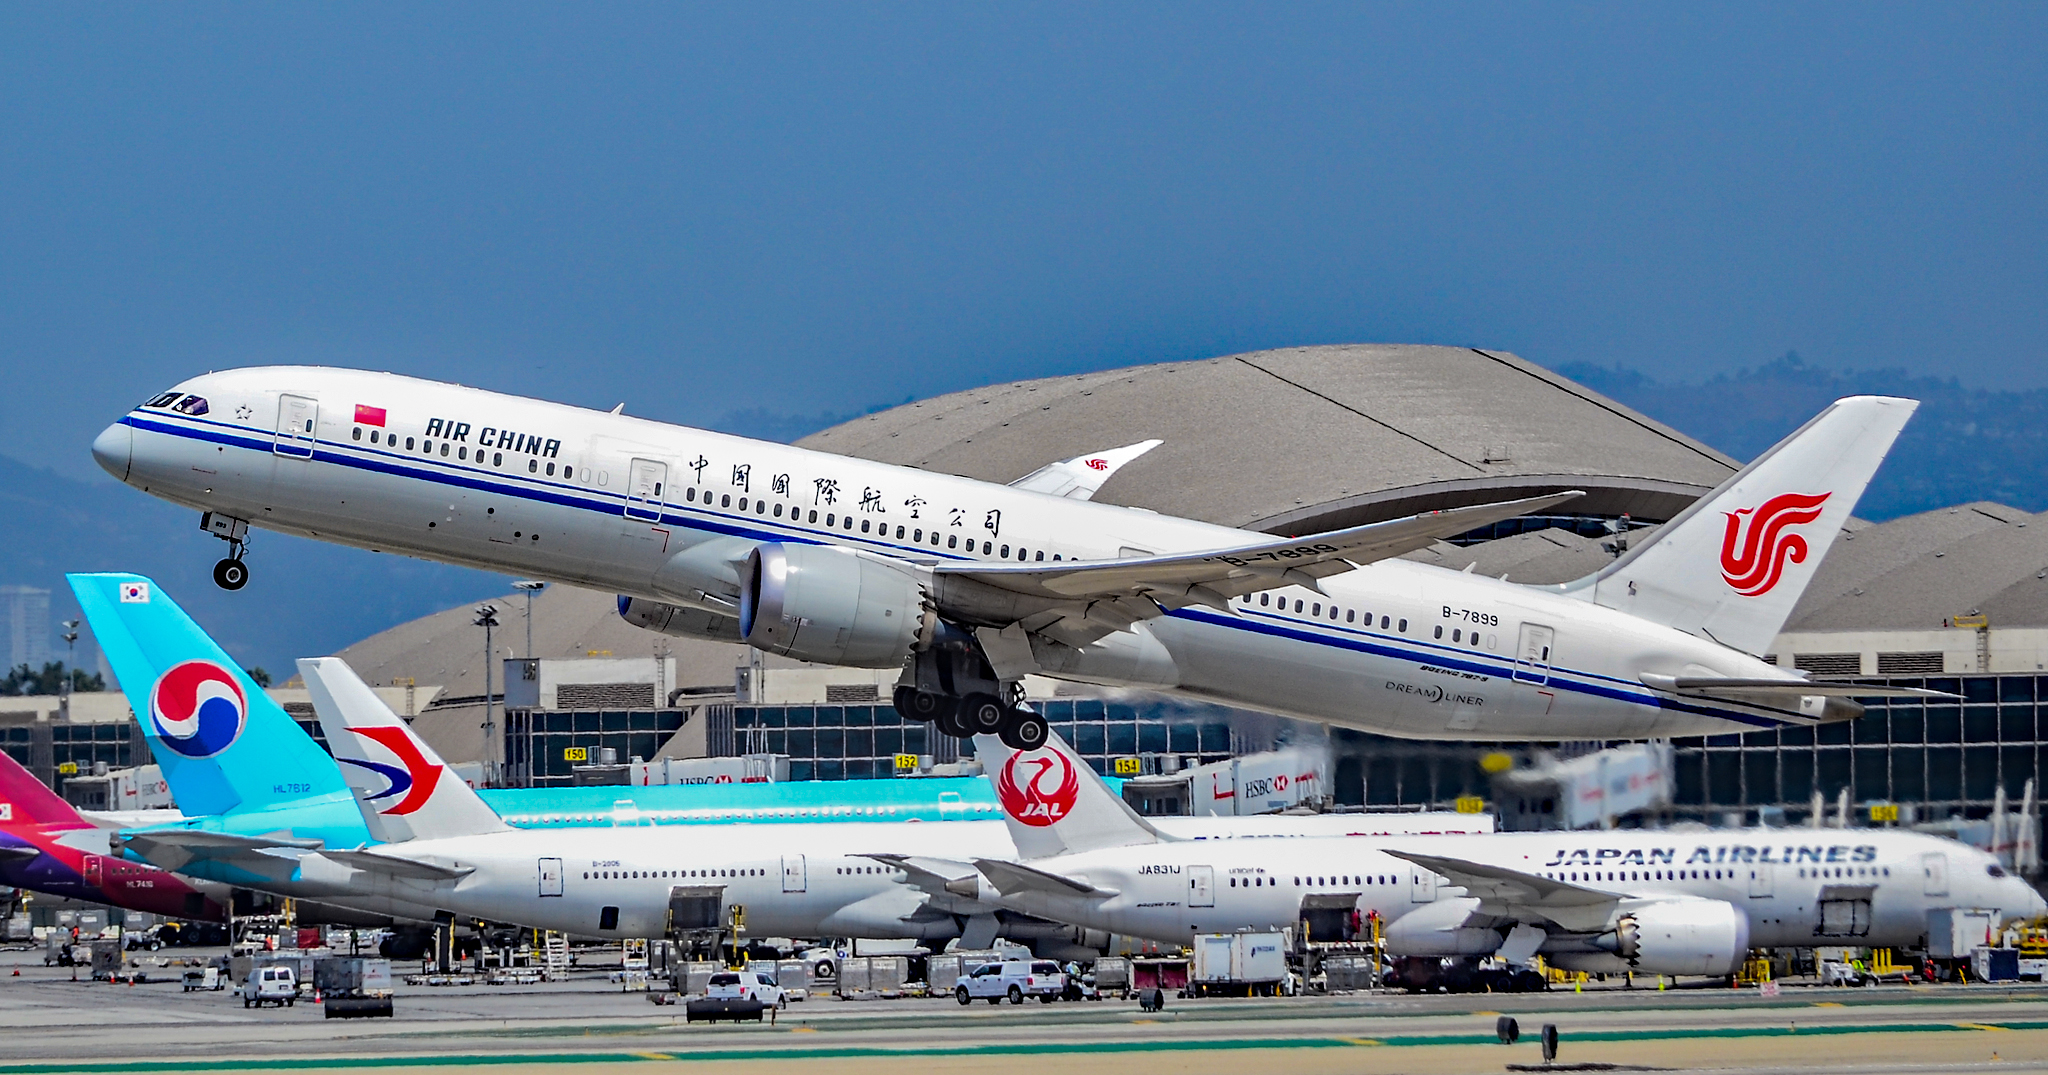 The Chinese New Year is this Saturday, and an estimated 3 billion trips are expected across the country Tomás Del Corofrom Las Vegas, Nevada, USA,B-7899 Air China Boeing 787-9 Dreamliner s-n 34311 (37846634196),CC BY-SA 2.0